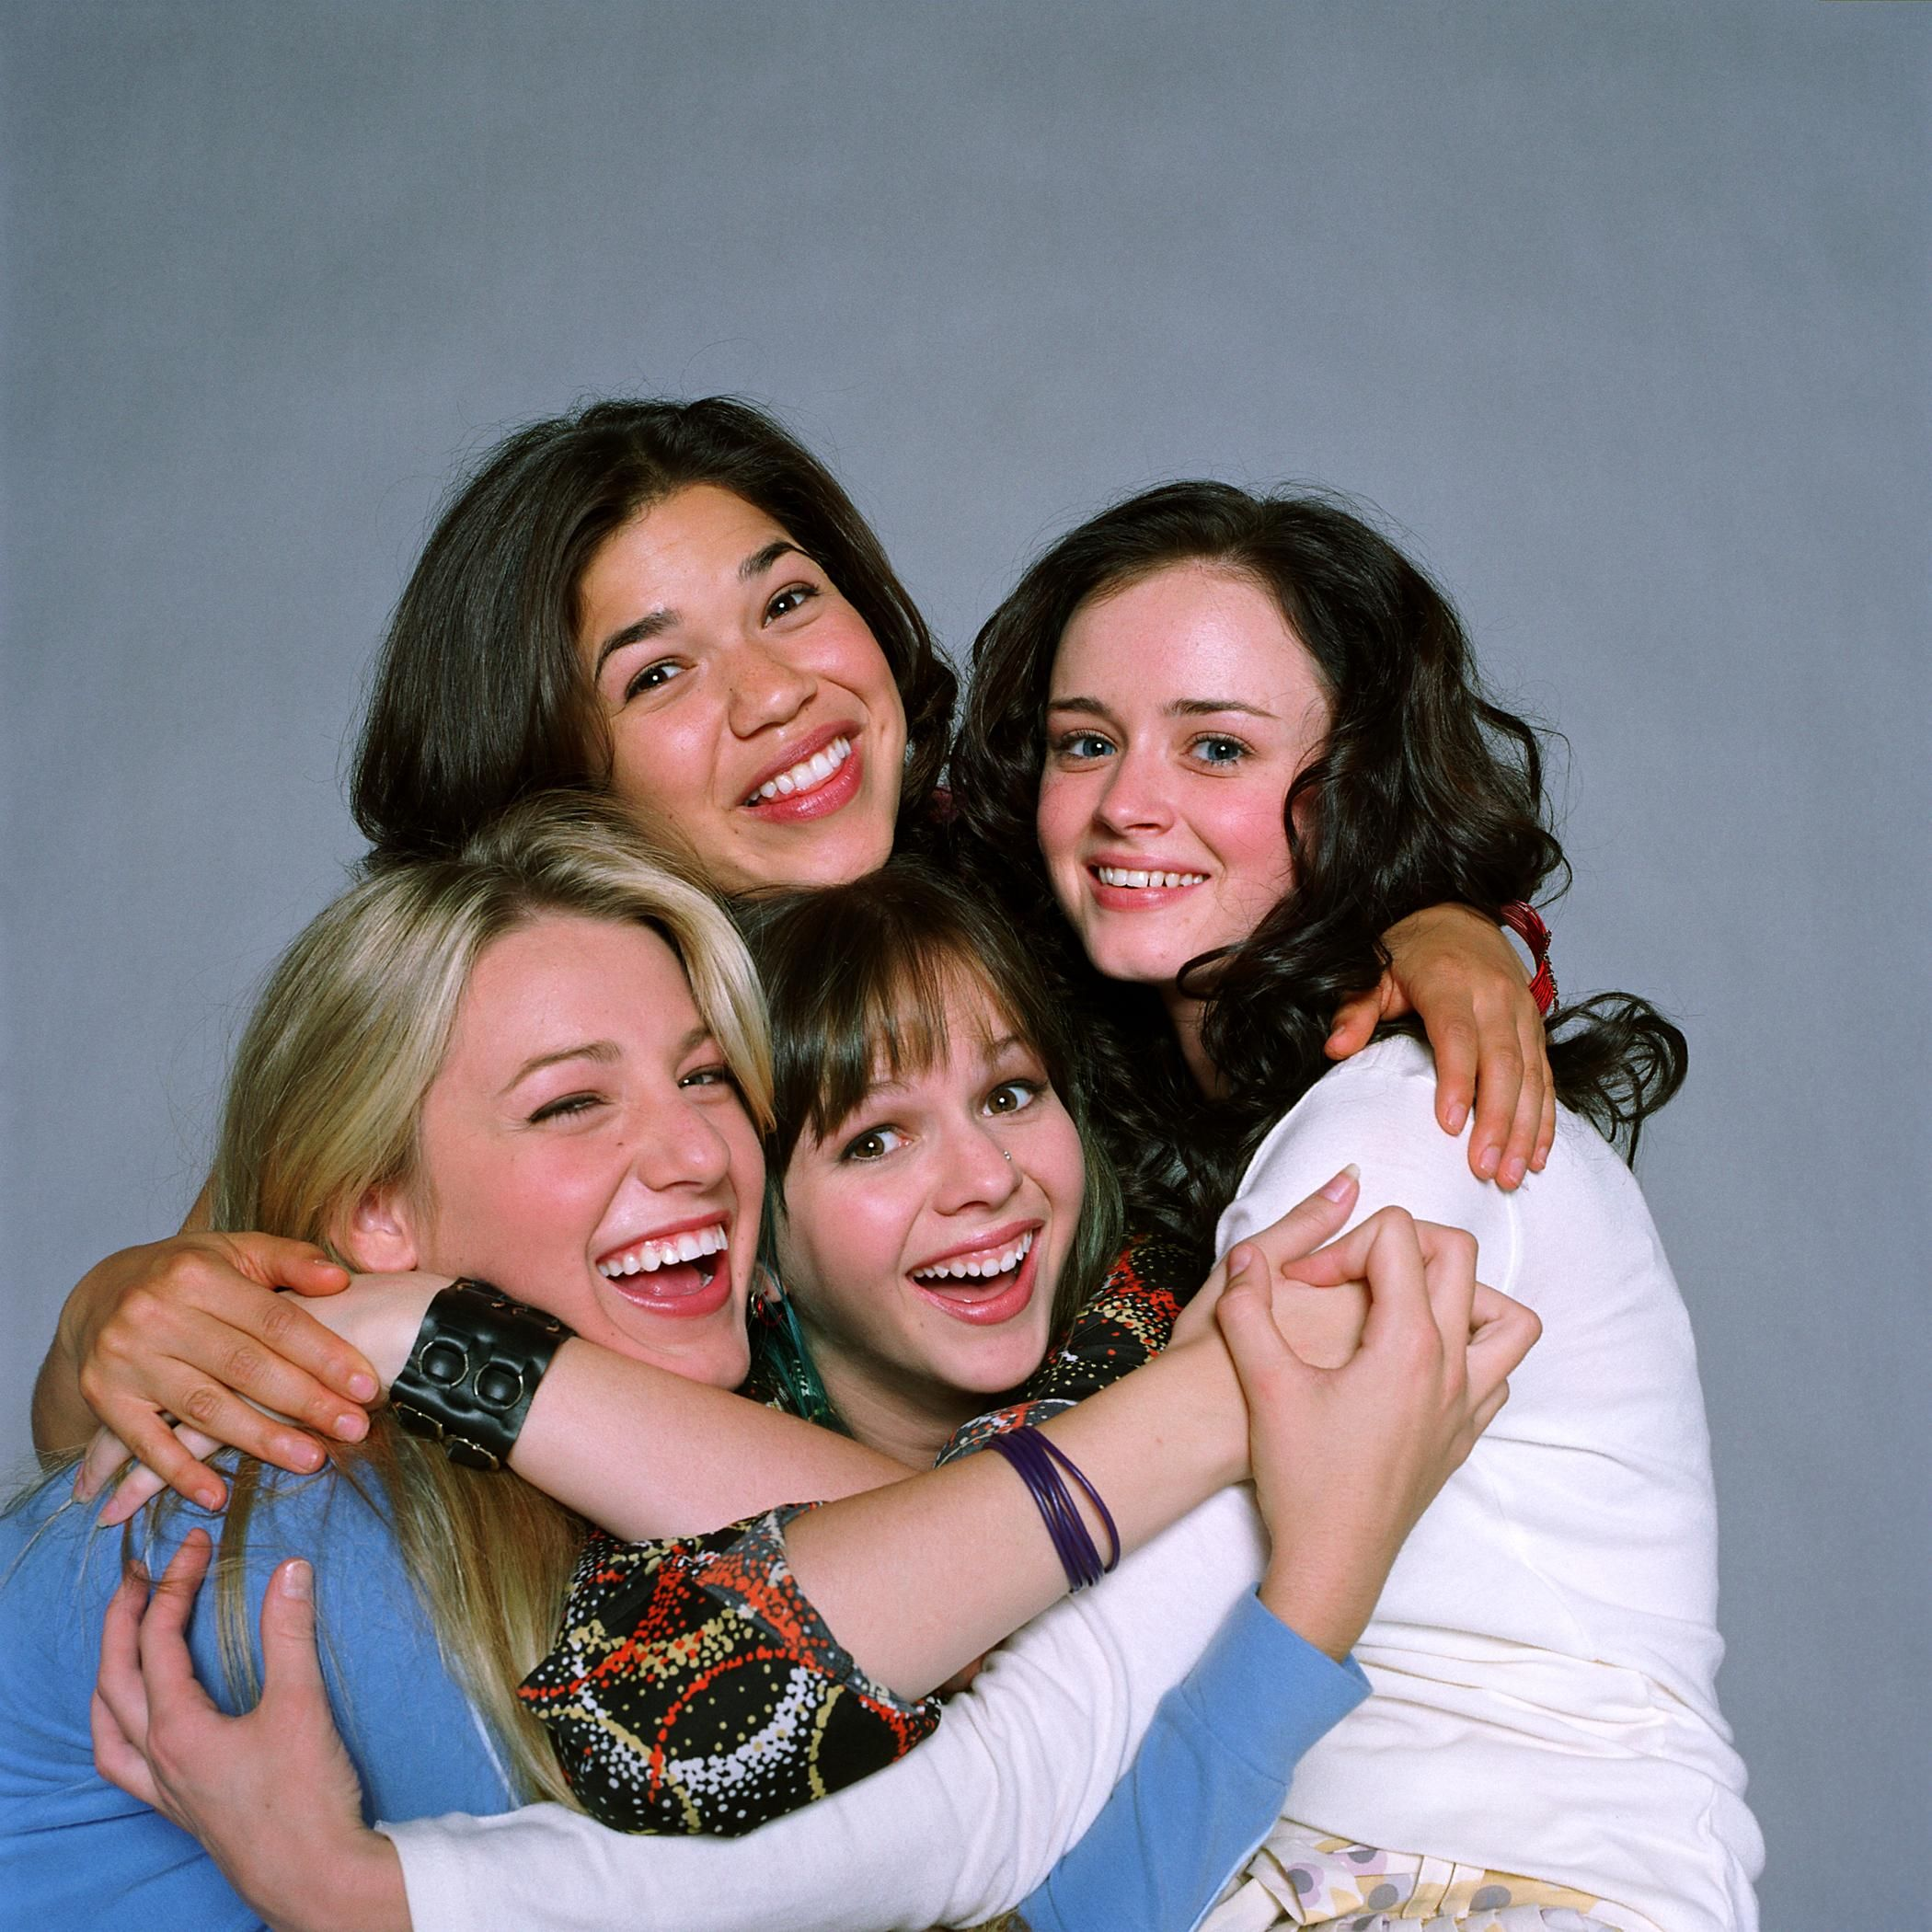 Sisterhood Of The Traveling Pants Quotes About Friendship Sisterhood Of Traveling Pants  Sisterhood Of The Traveling Pants